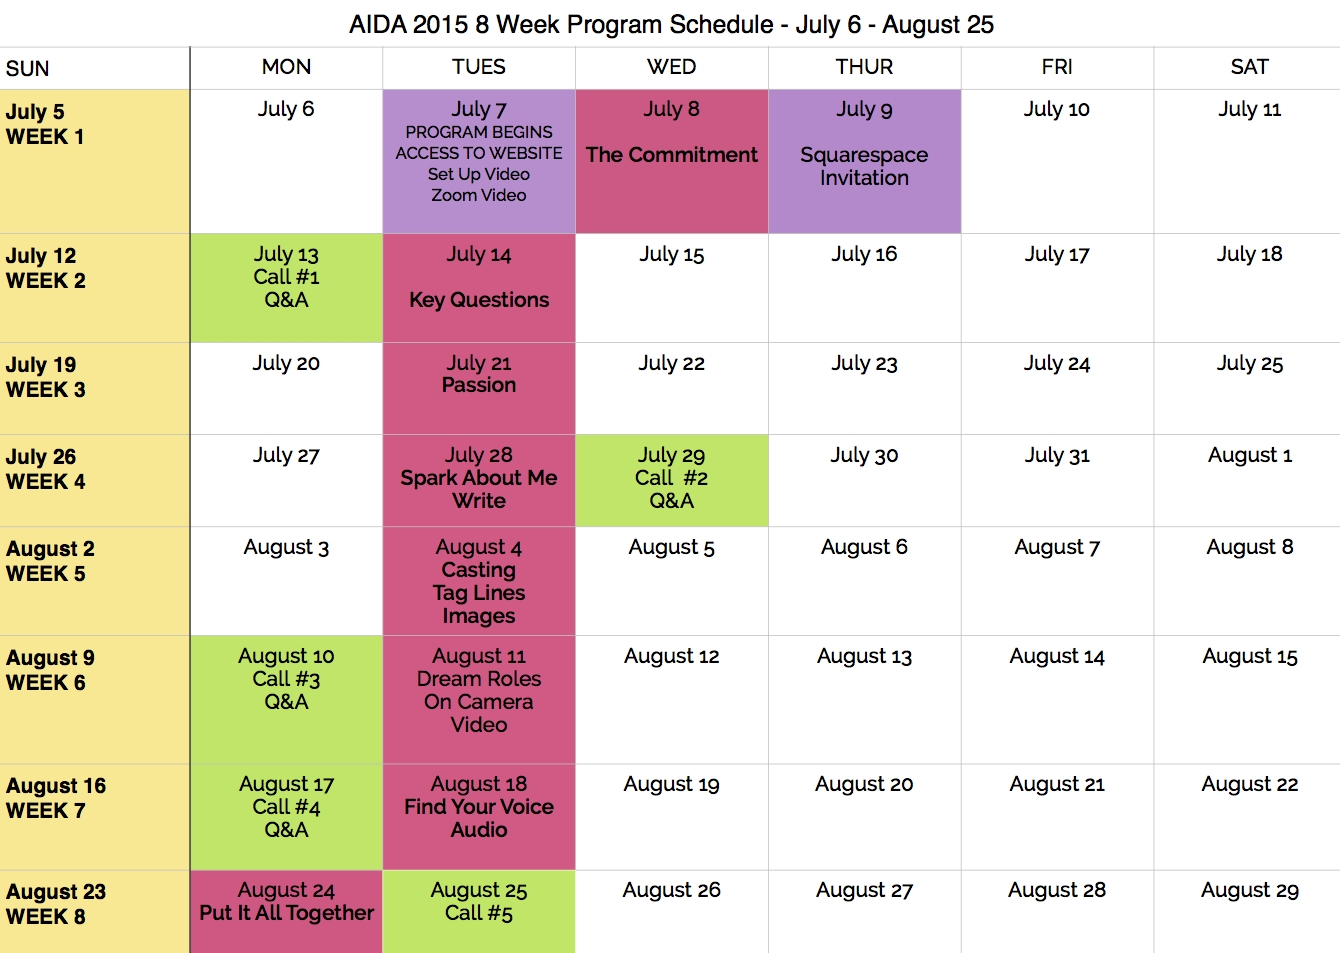 AIDA 2015 Program Schedule Revised.jpg